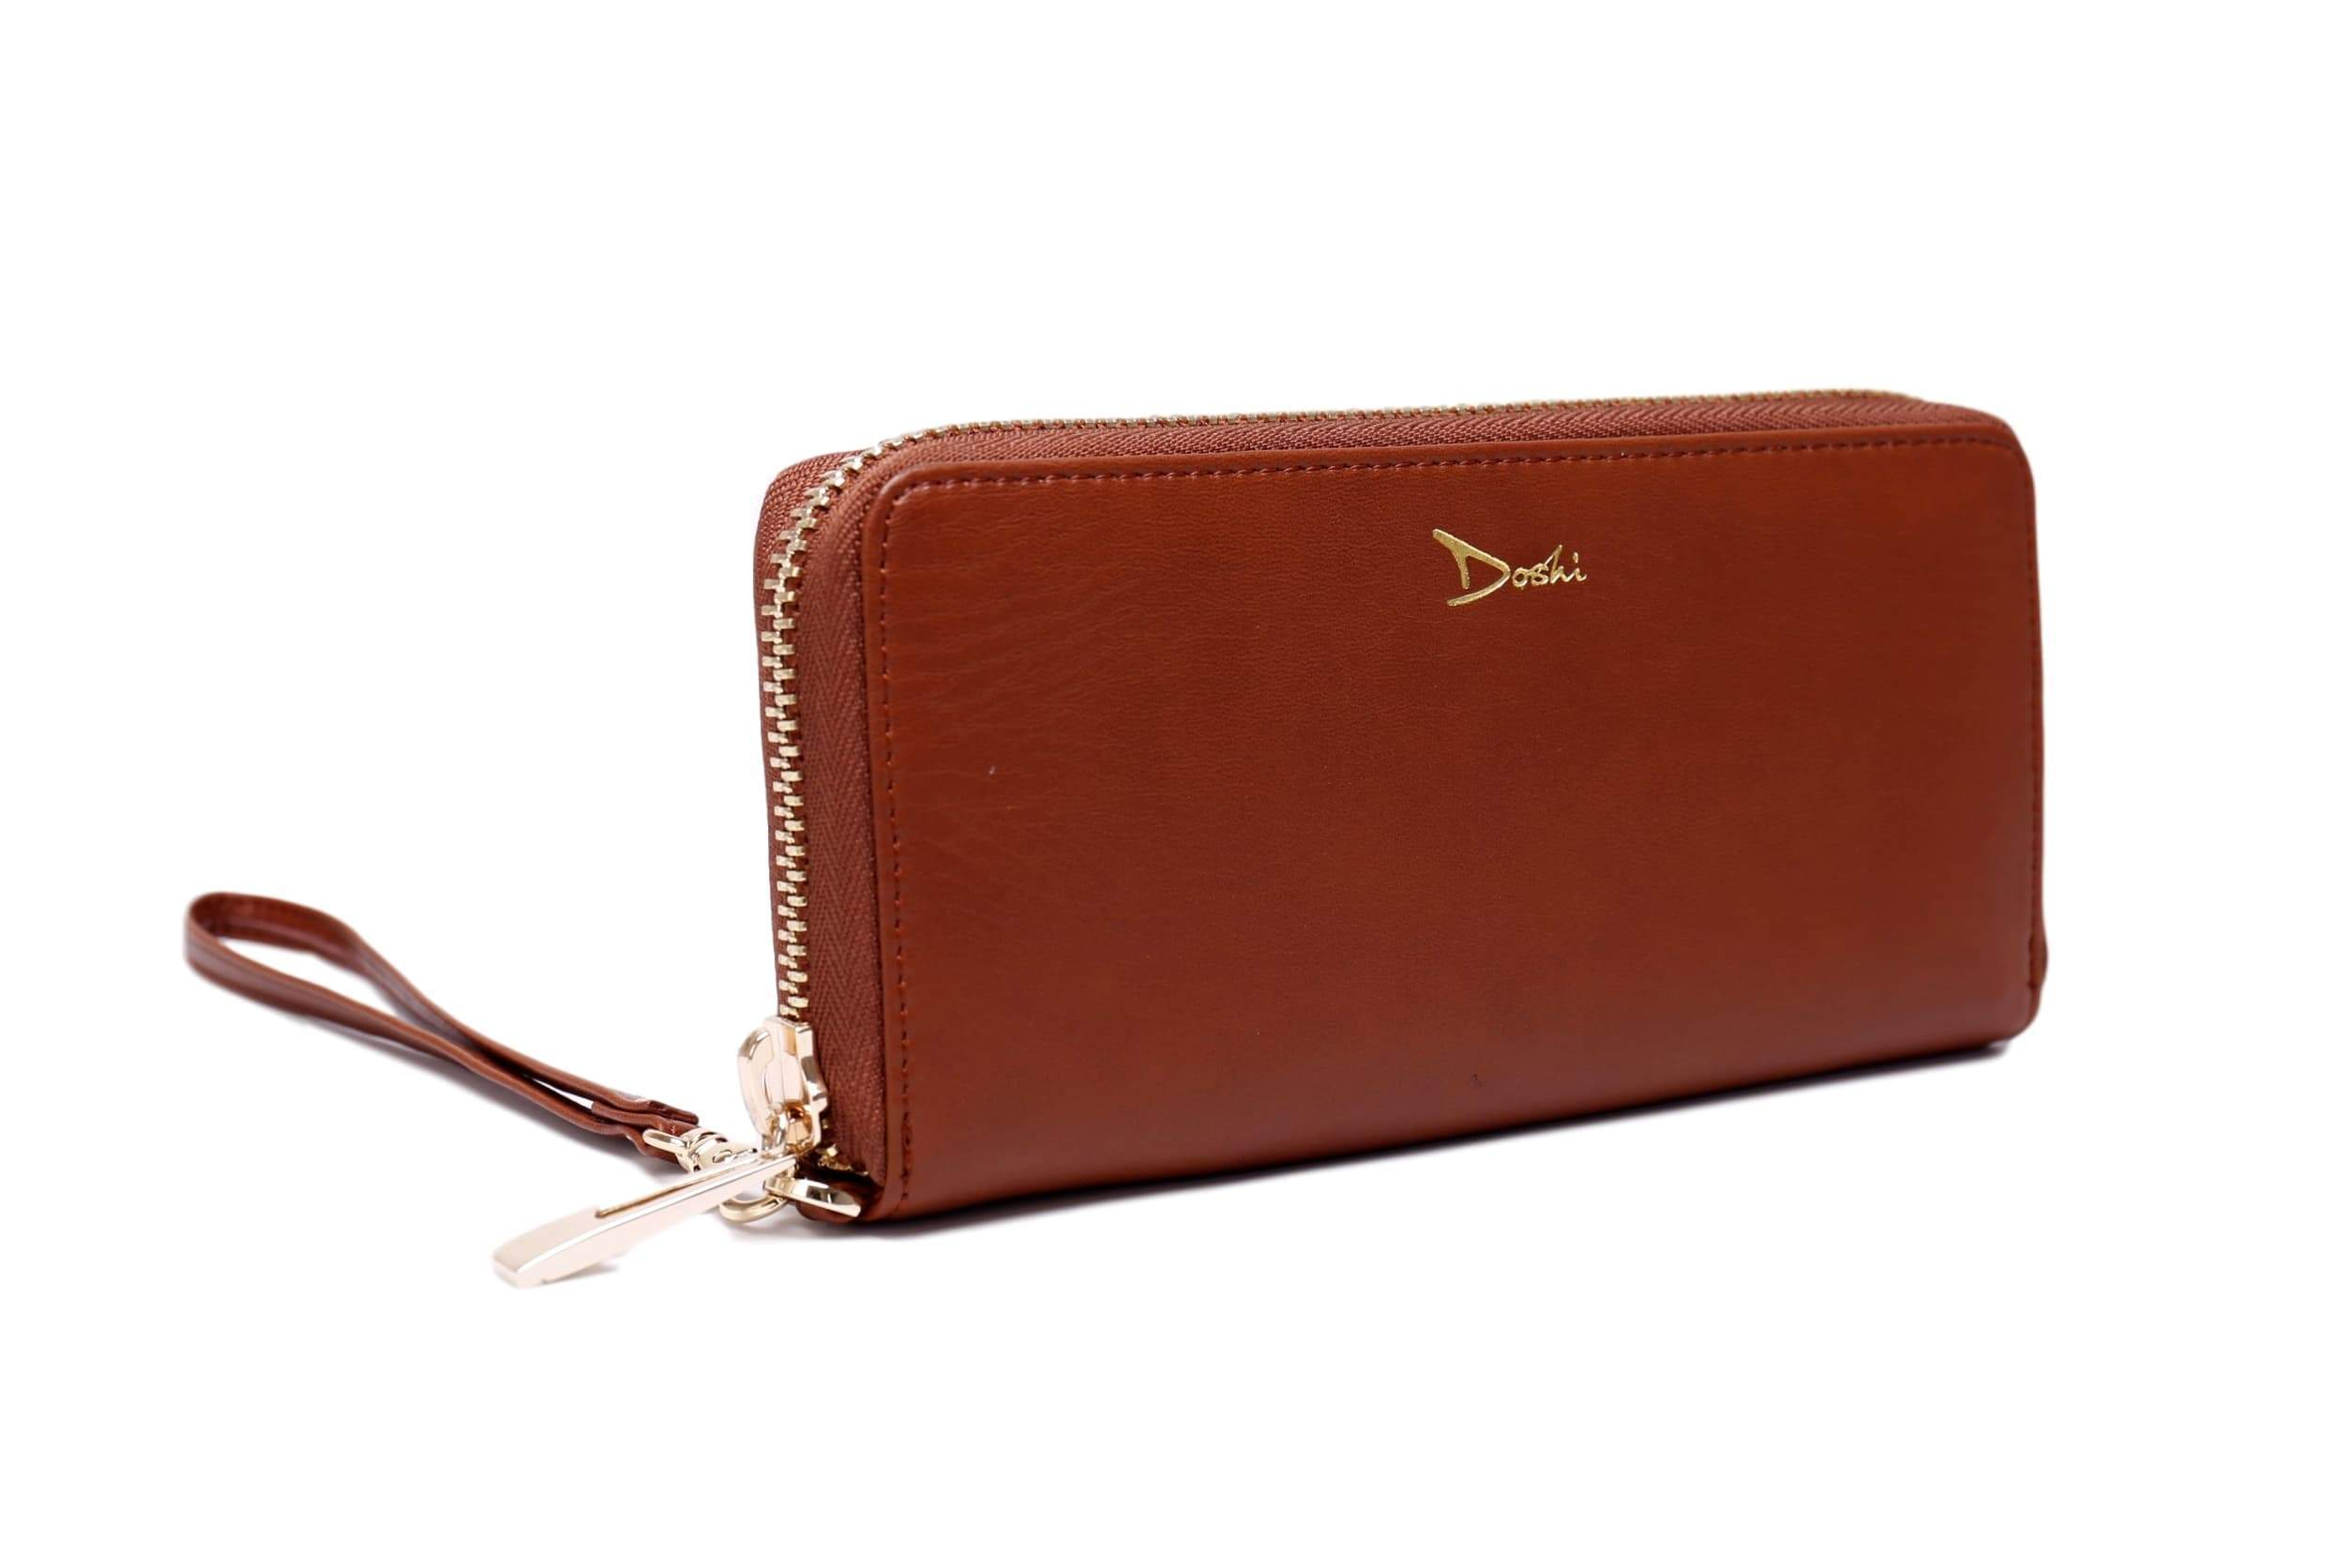 Doshi Accordion Wallet - Vegan